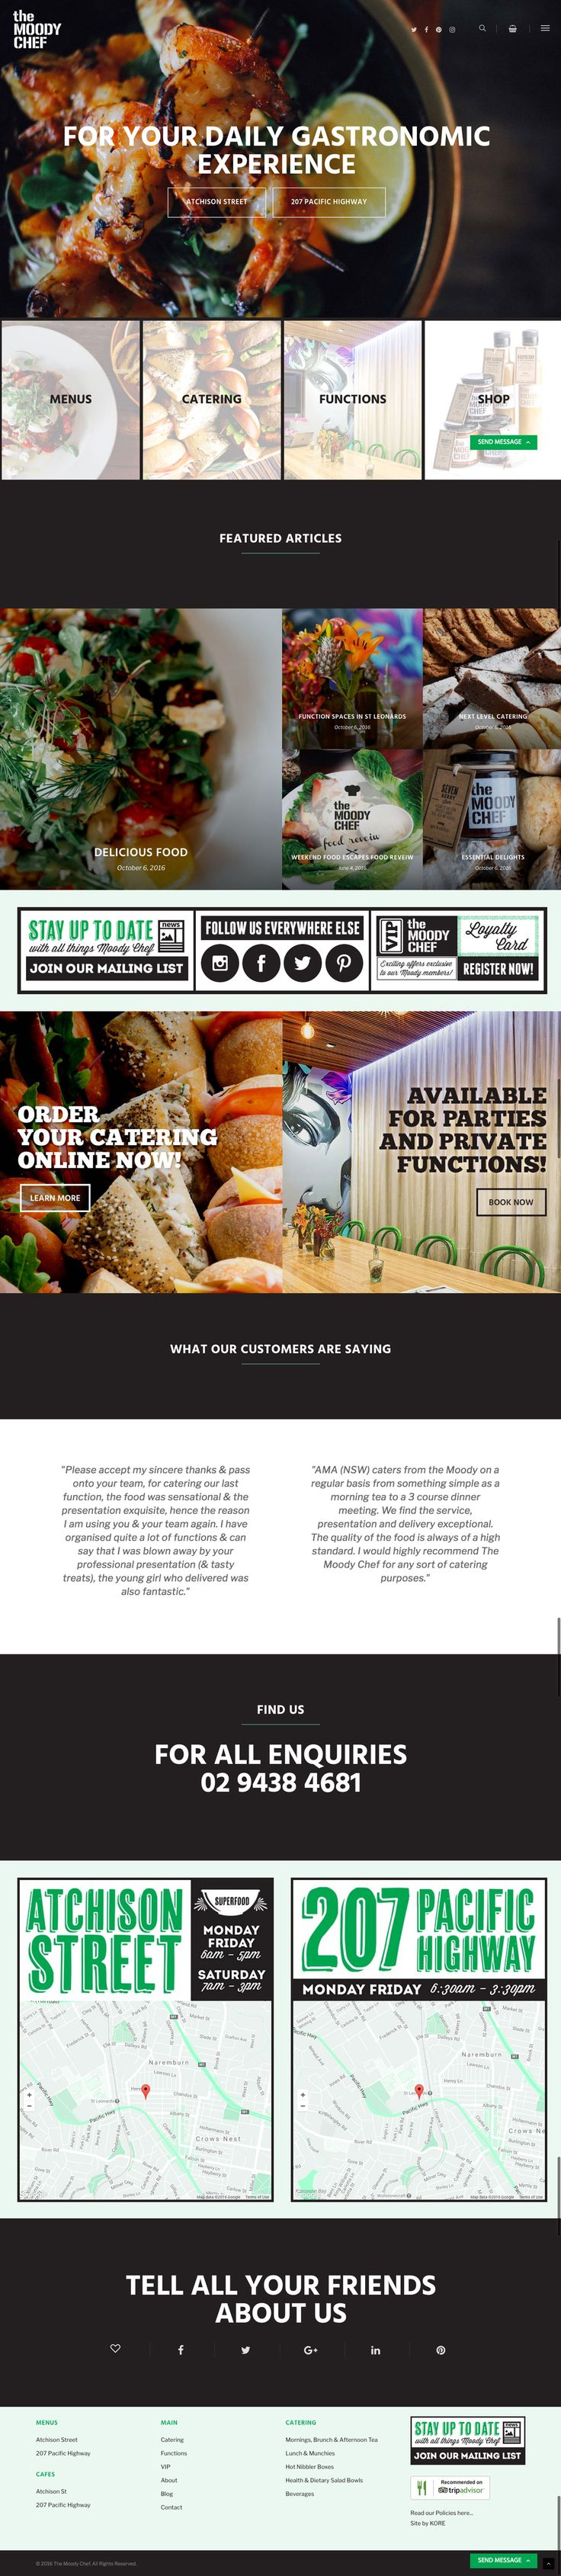 The Moody Chef's new responsive website by KORE (http://kore.digital/). Home page view.